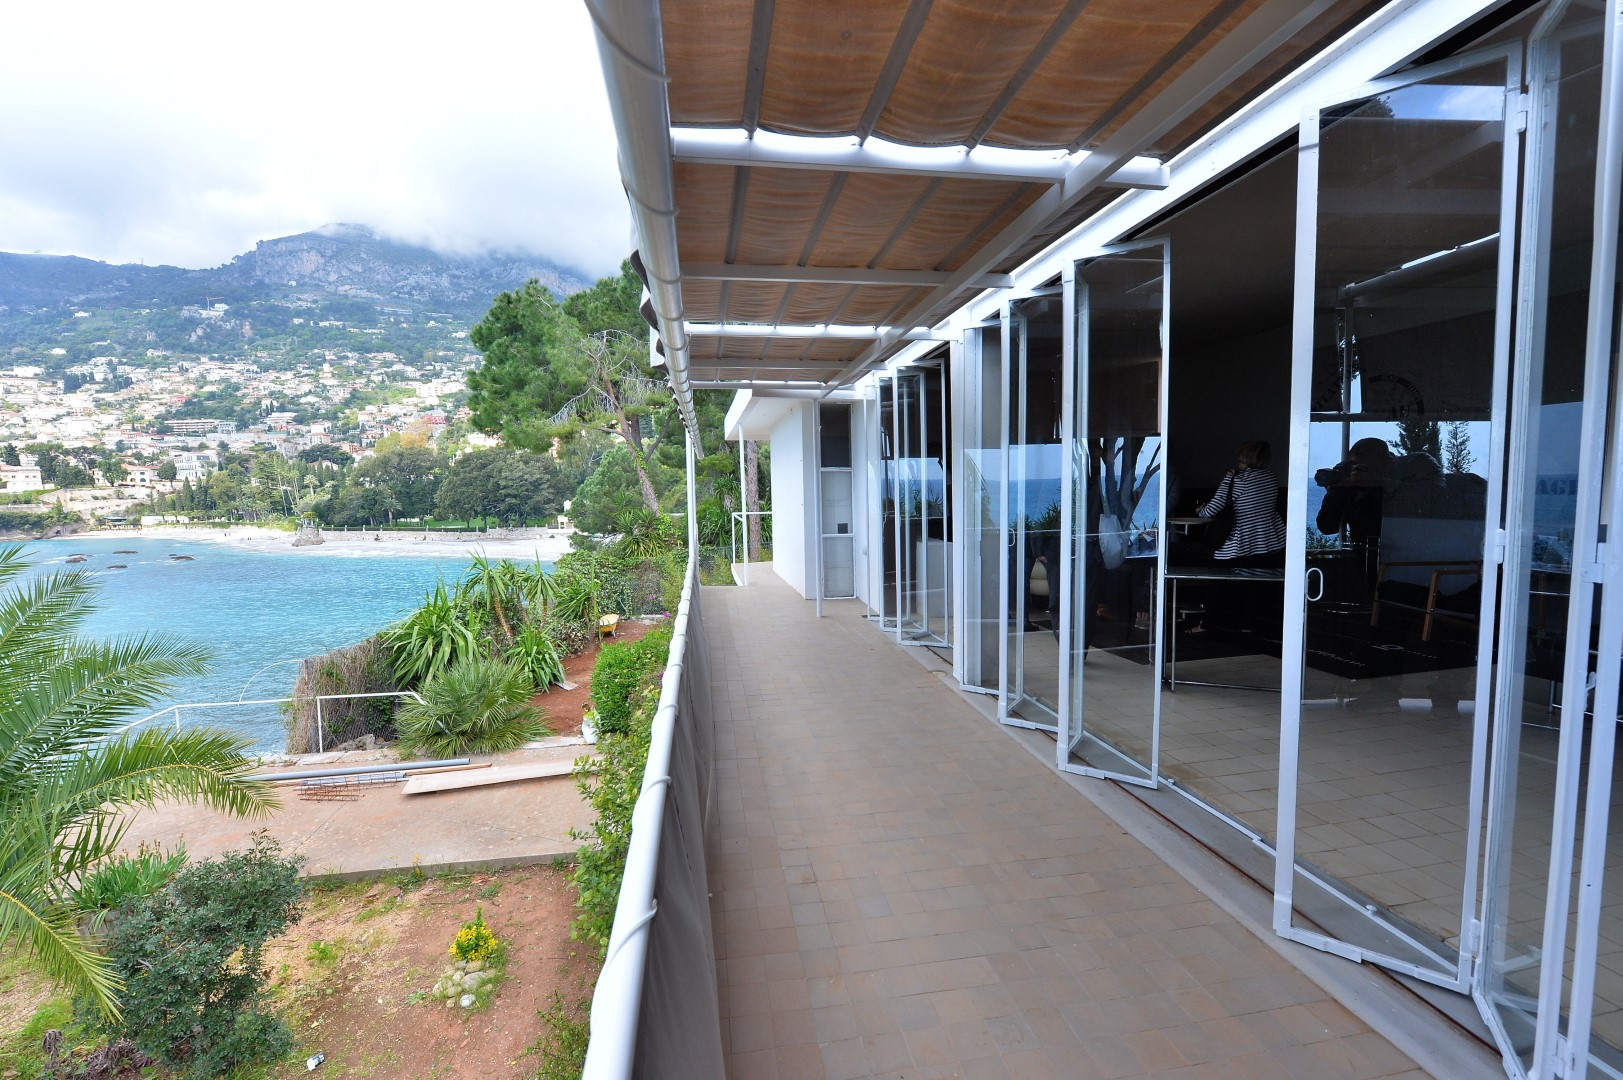 photos la villa d 39 eileen gray roquebrune cap martin d voil e au public roquebrune cap. Black Bedroom Furniture Sets. Home Design Ideas